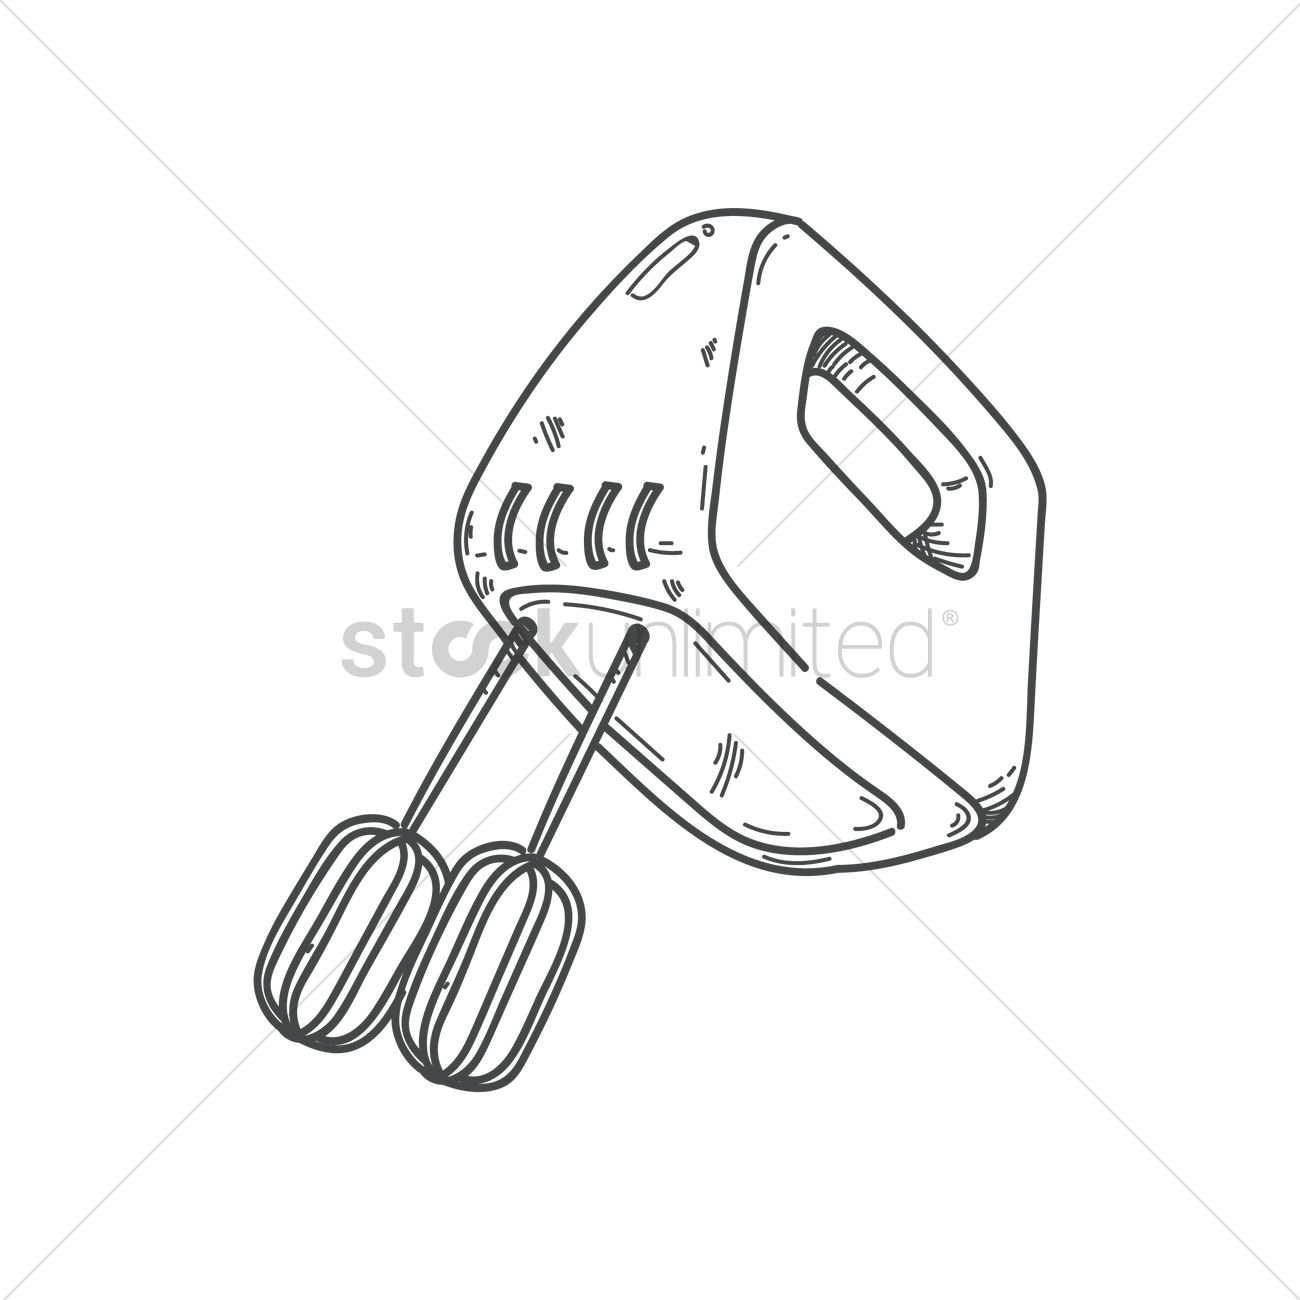 Electric Whisk Vector Image